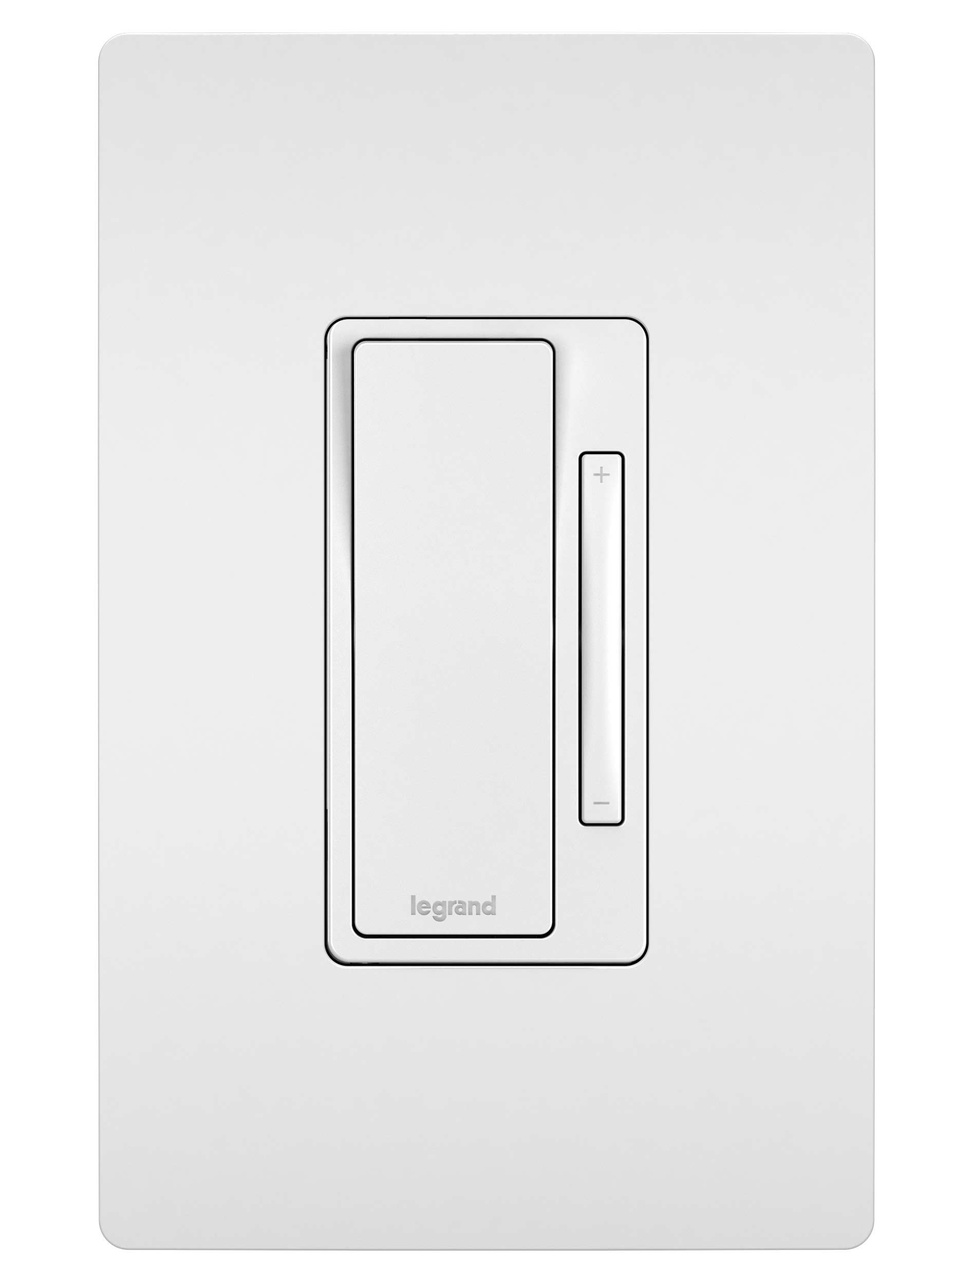 radiant® 120V Single Pole/3-Way Multi-Location Remote Dimmer ... on a light switch wiring, 3-way switch light wiring, 5 light switch wiring, a four way switch wiring, 5-way switch wiring, 3-way electrical switch, 3-way switch wiring examples, a one way switch wiring, 3 way motion switch wiring, old 3-way switch wiring, 3-way fan switch wiring, 3-way rocker switch wiring, 3-way automotive toggle switch wiring, lutron dimmer wiring, 3-way motion sensor light switch, basic light switch wiring, 3-way switch wiring diagram variations, 3-way circuit with dimmer, 2 way switch wiring, 3-way lamp,